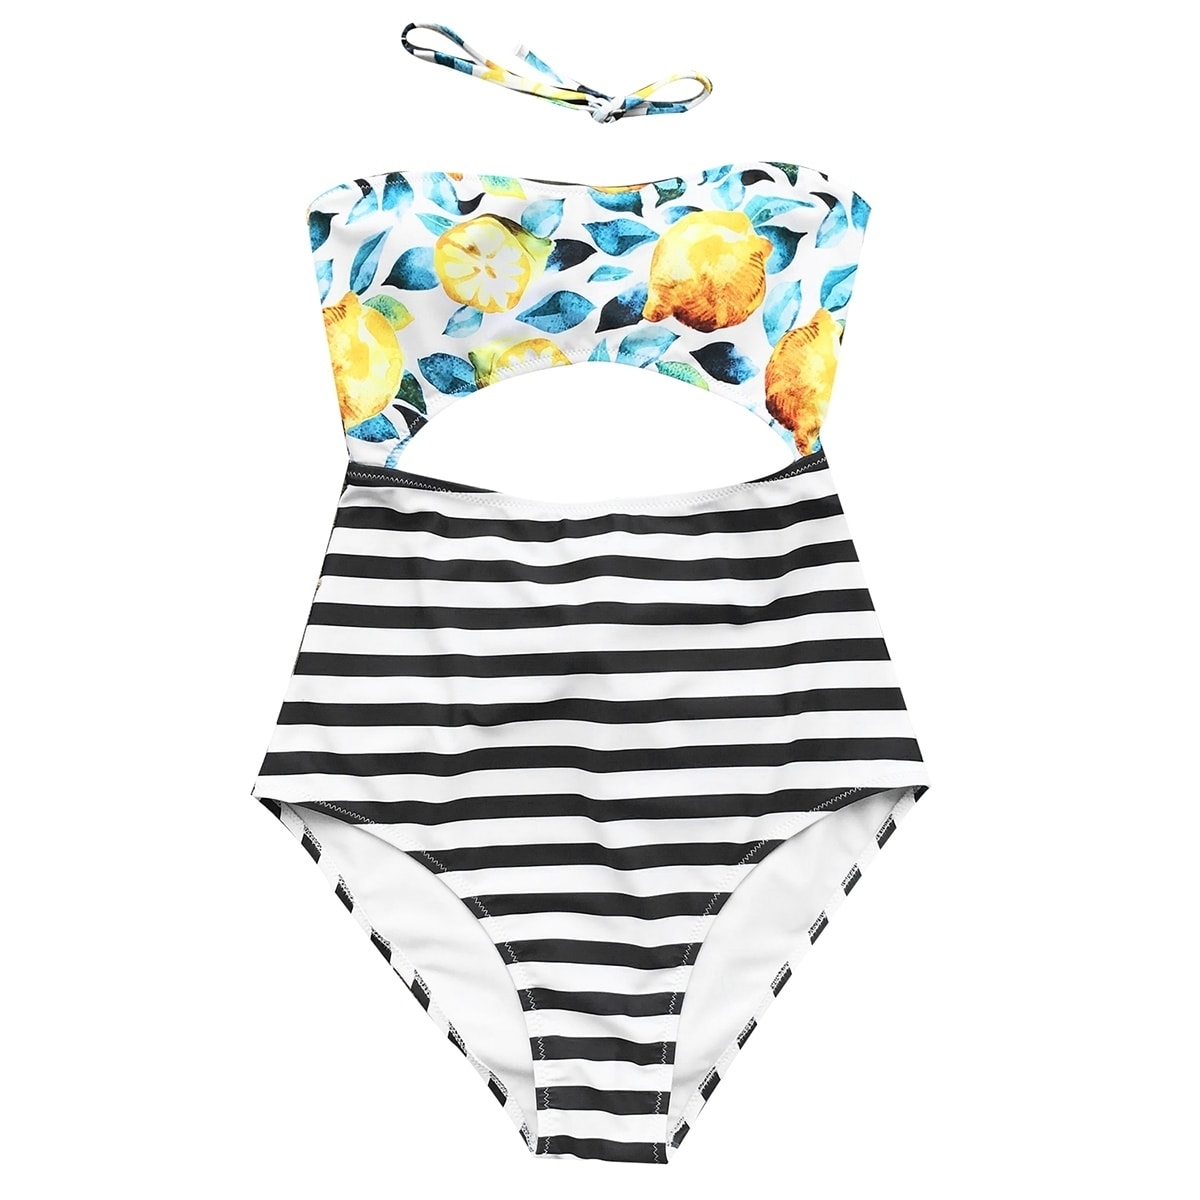 e8ee9b5a353c8 Shop Cupshe Women's Lemon Stripe Printing High-waisted One-piece Cutout Swimsuit  Sexy Bikini - Free Shipping On Orders Over $45 - Overstock - 20489015